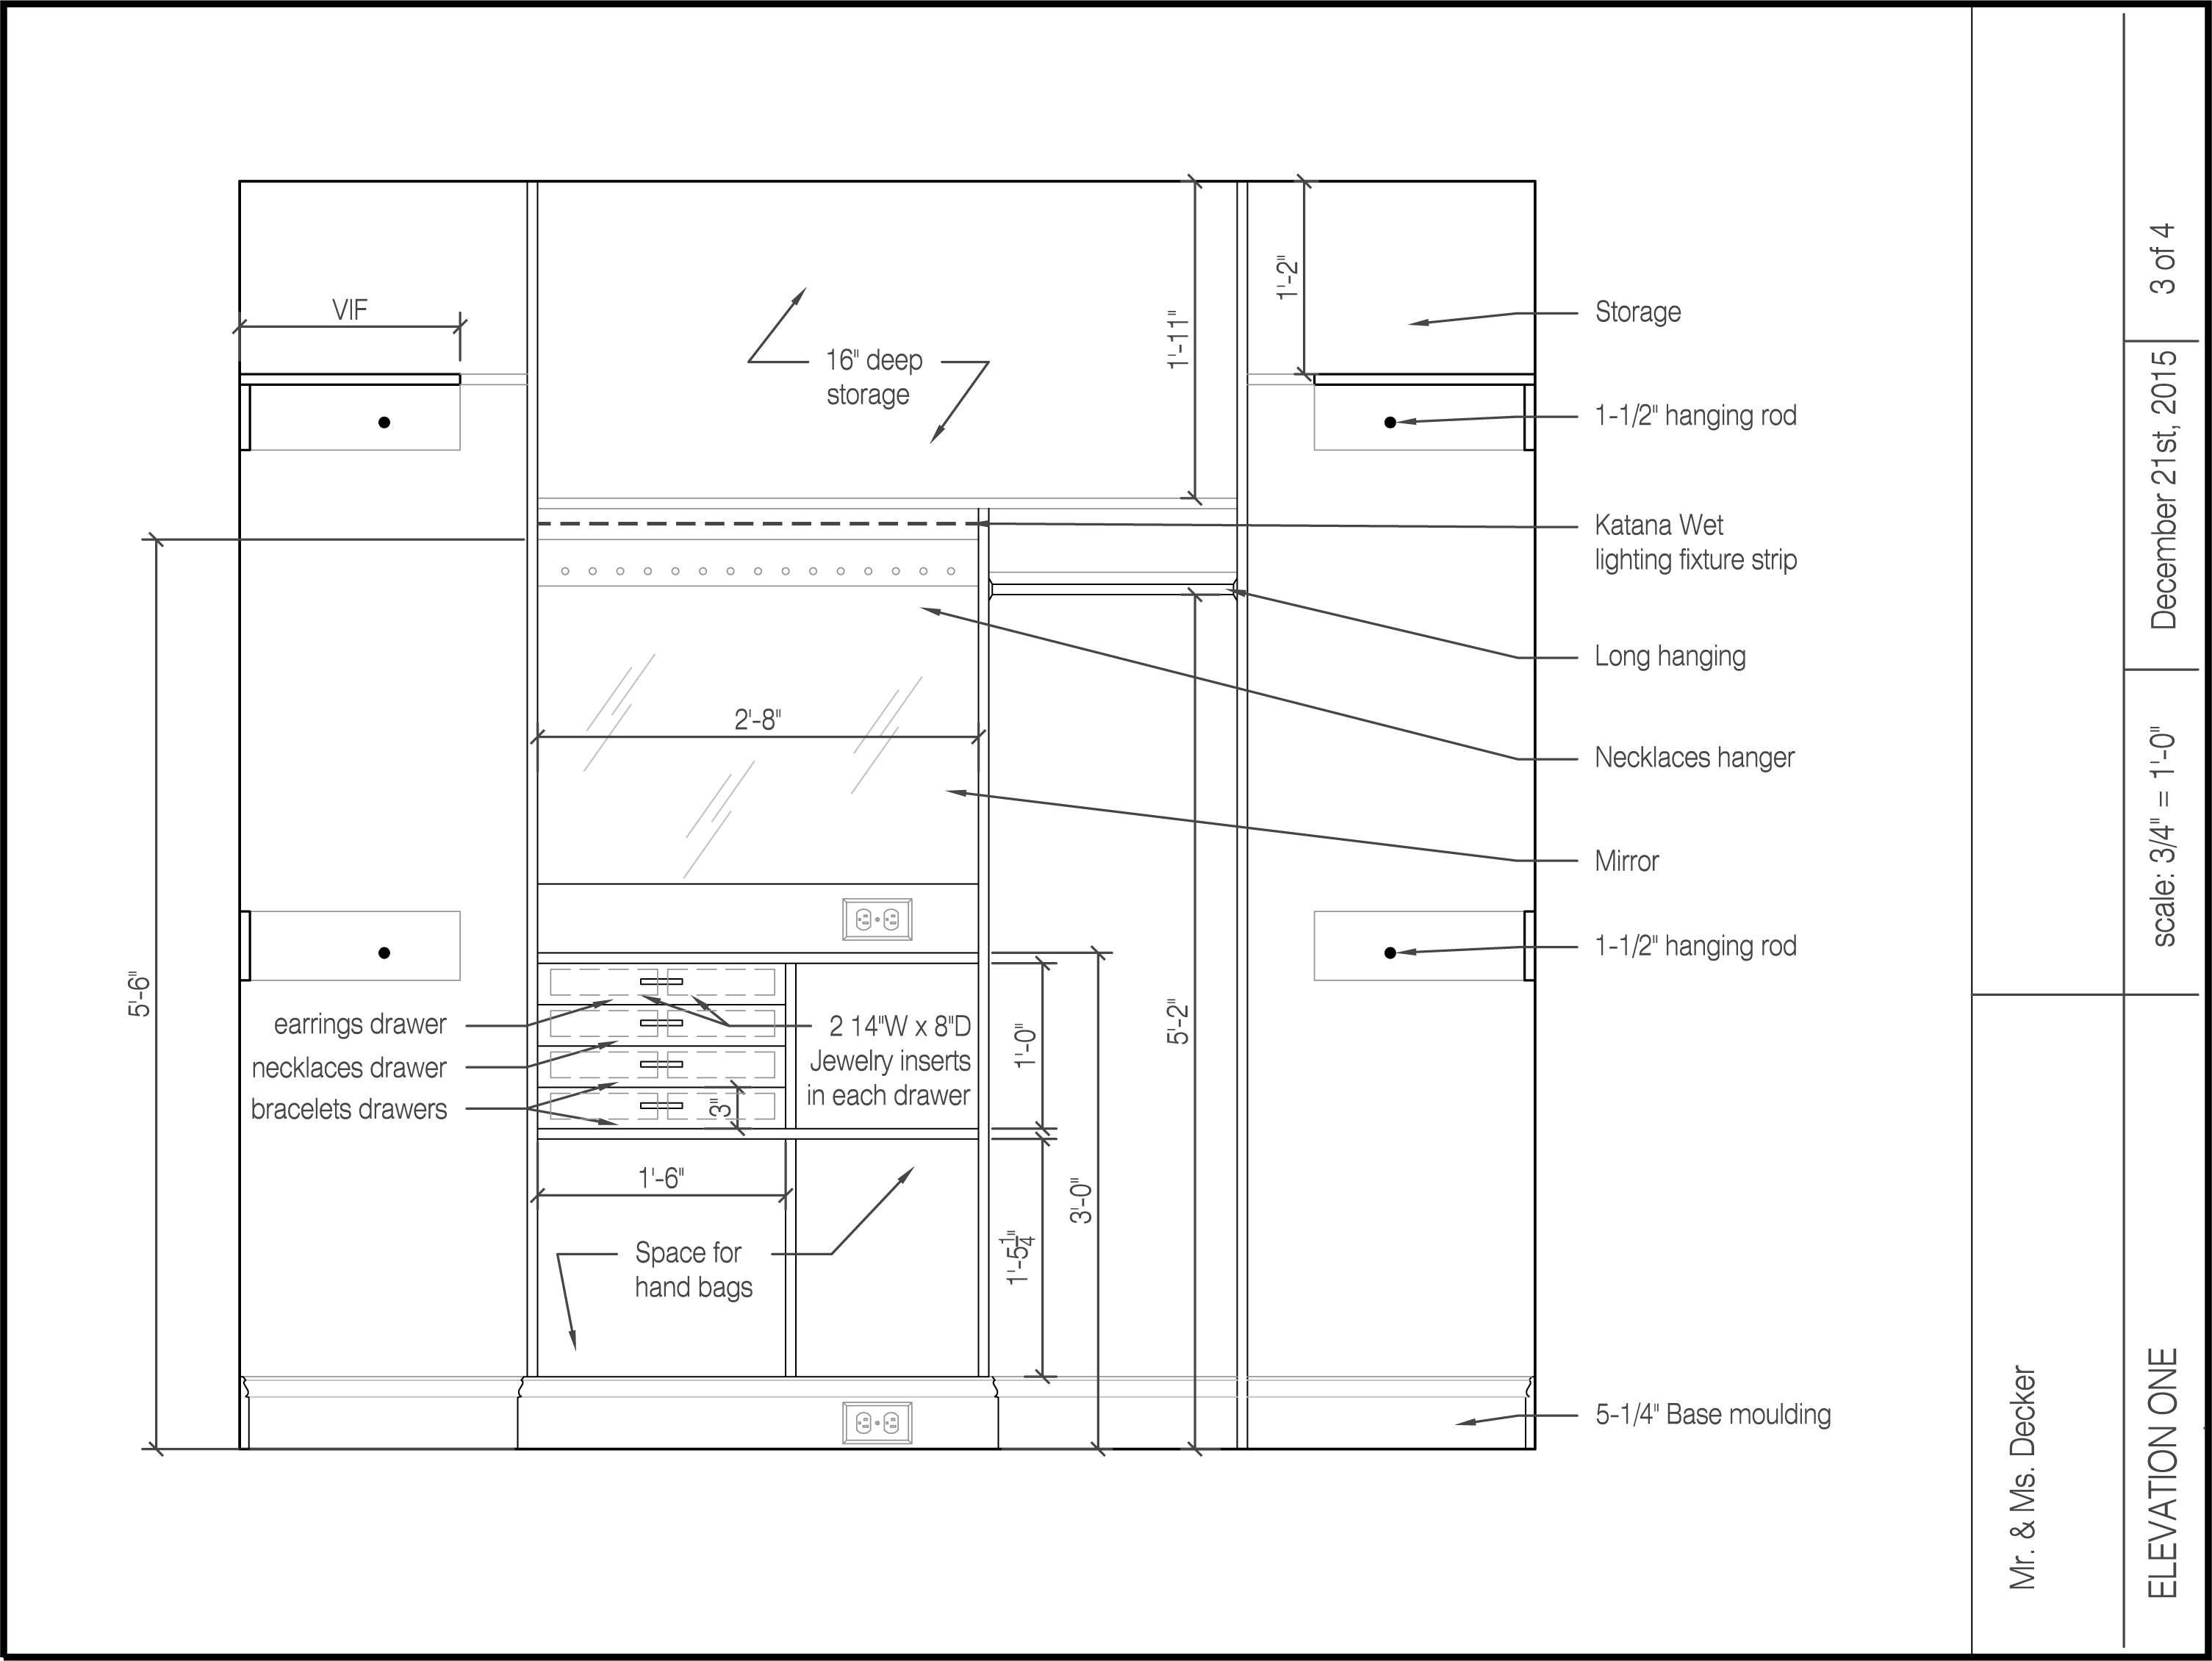 Closet Design January Become Organized Lighting Diagram Jewelry I Would Need For Each Type Of Clothing And Developed Layouts The To Include Shoe Storage Purse Double Rods Trays